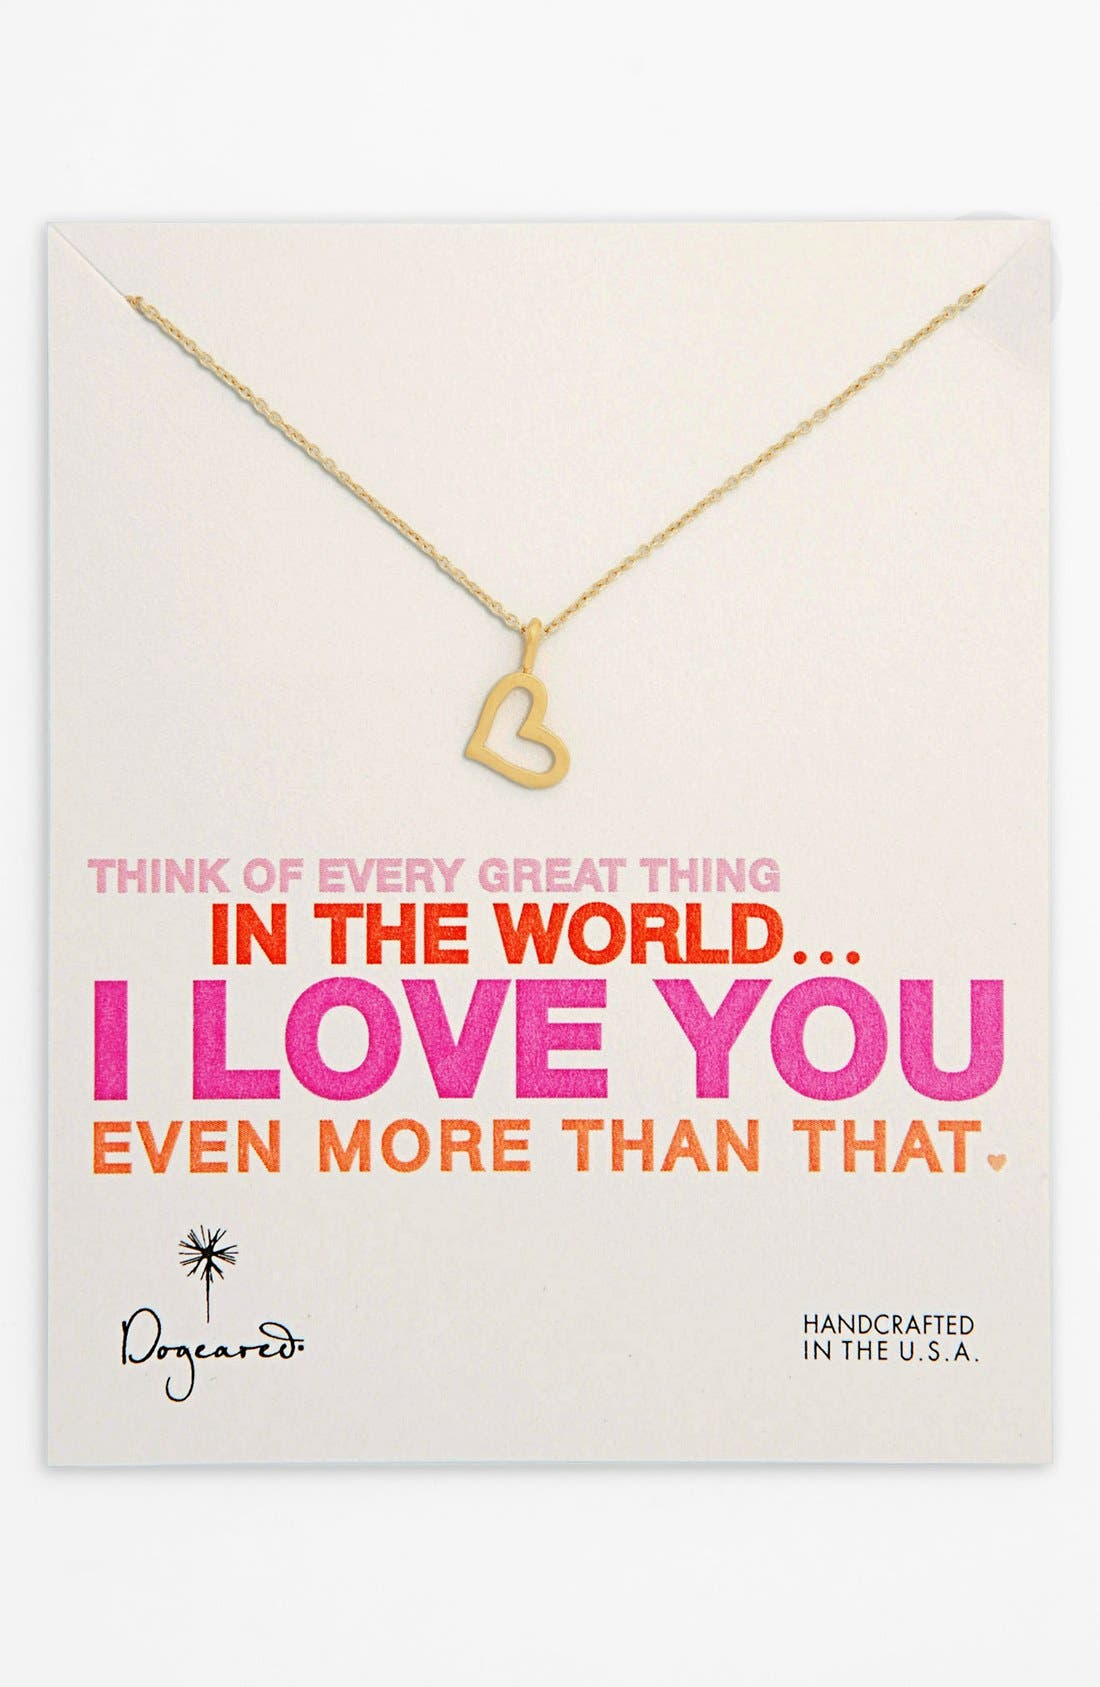 Alternate Image 1 Selected - Dogeared 'Every Great Thing' Boxed Heart Pendant Necklace